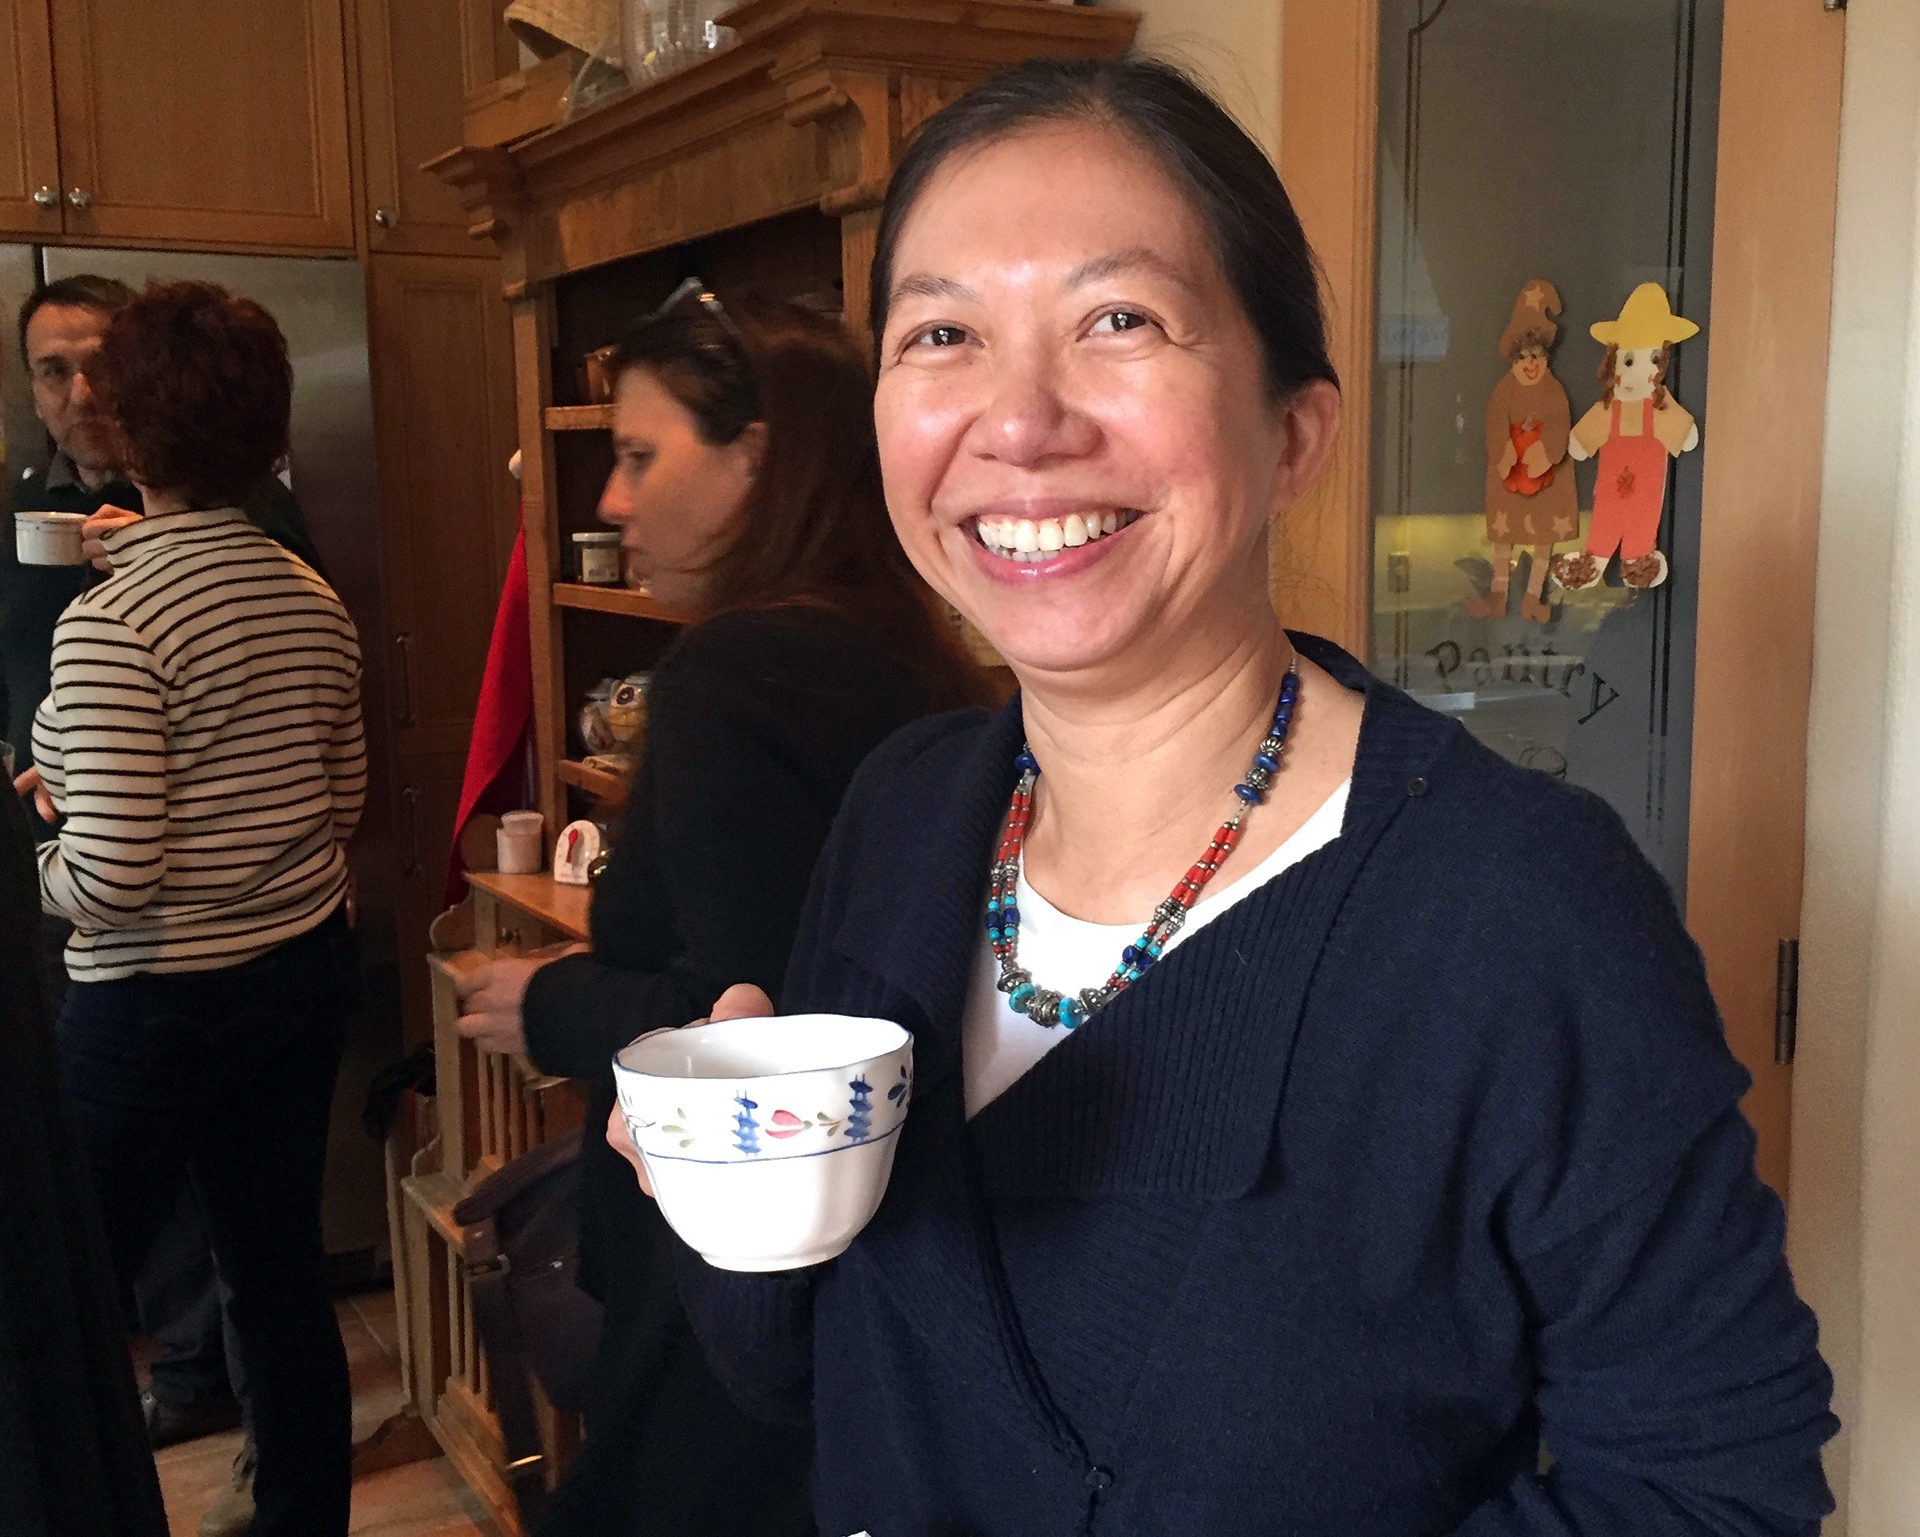 April Chou will be the host of the next Tapestry Supper and cook food from her native Burma.